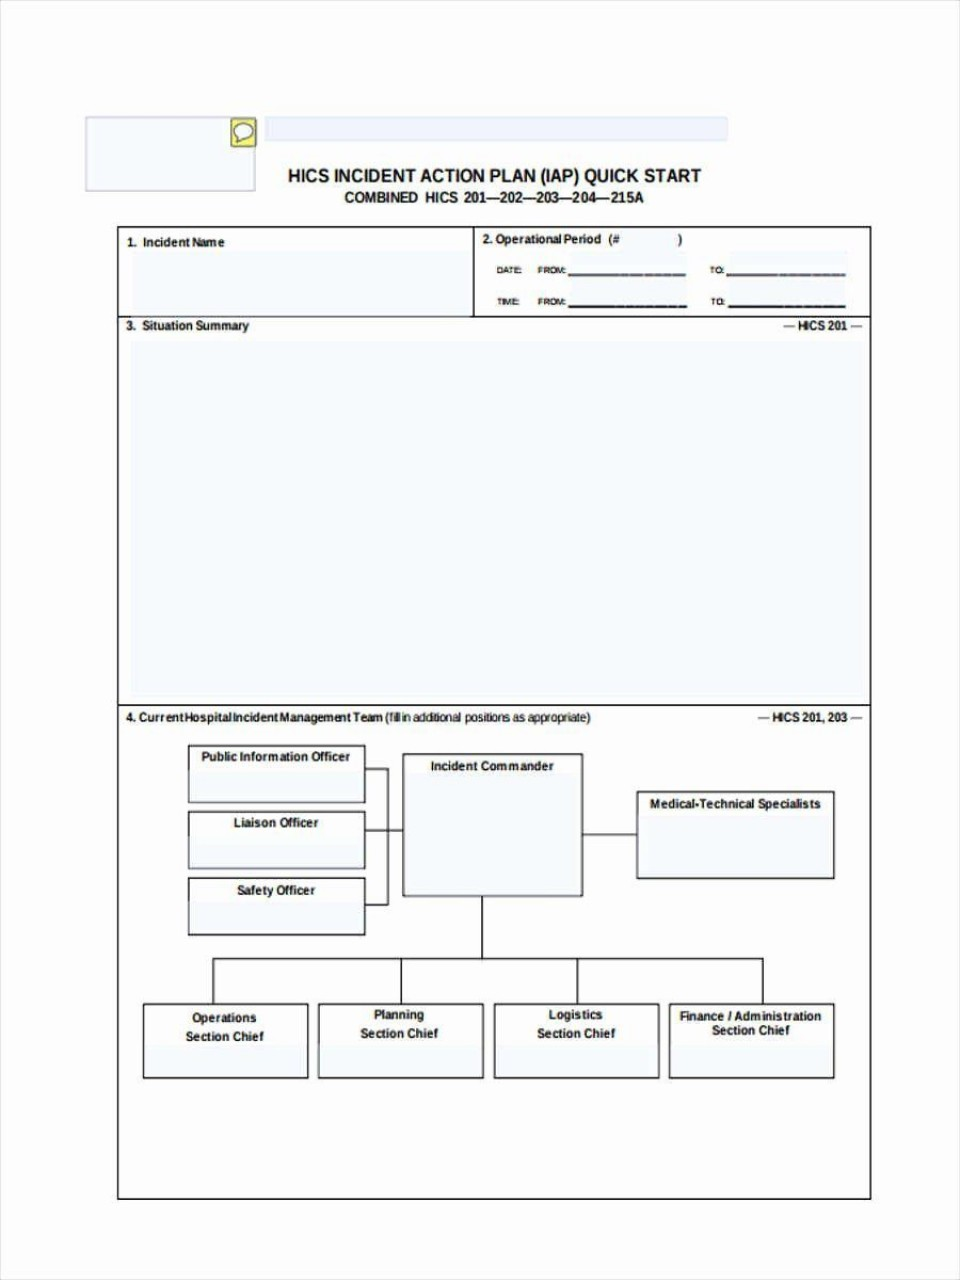 000 Shocking Incident Action Plan Template High Definition  Fire Example Format Form 201960